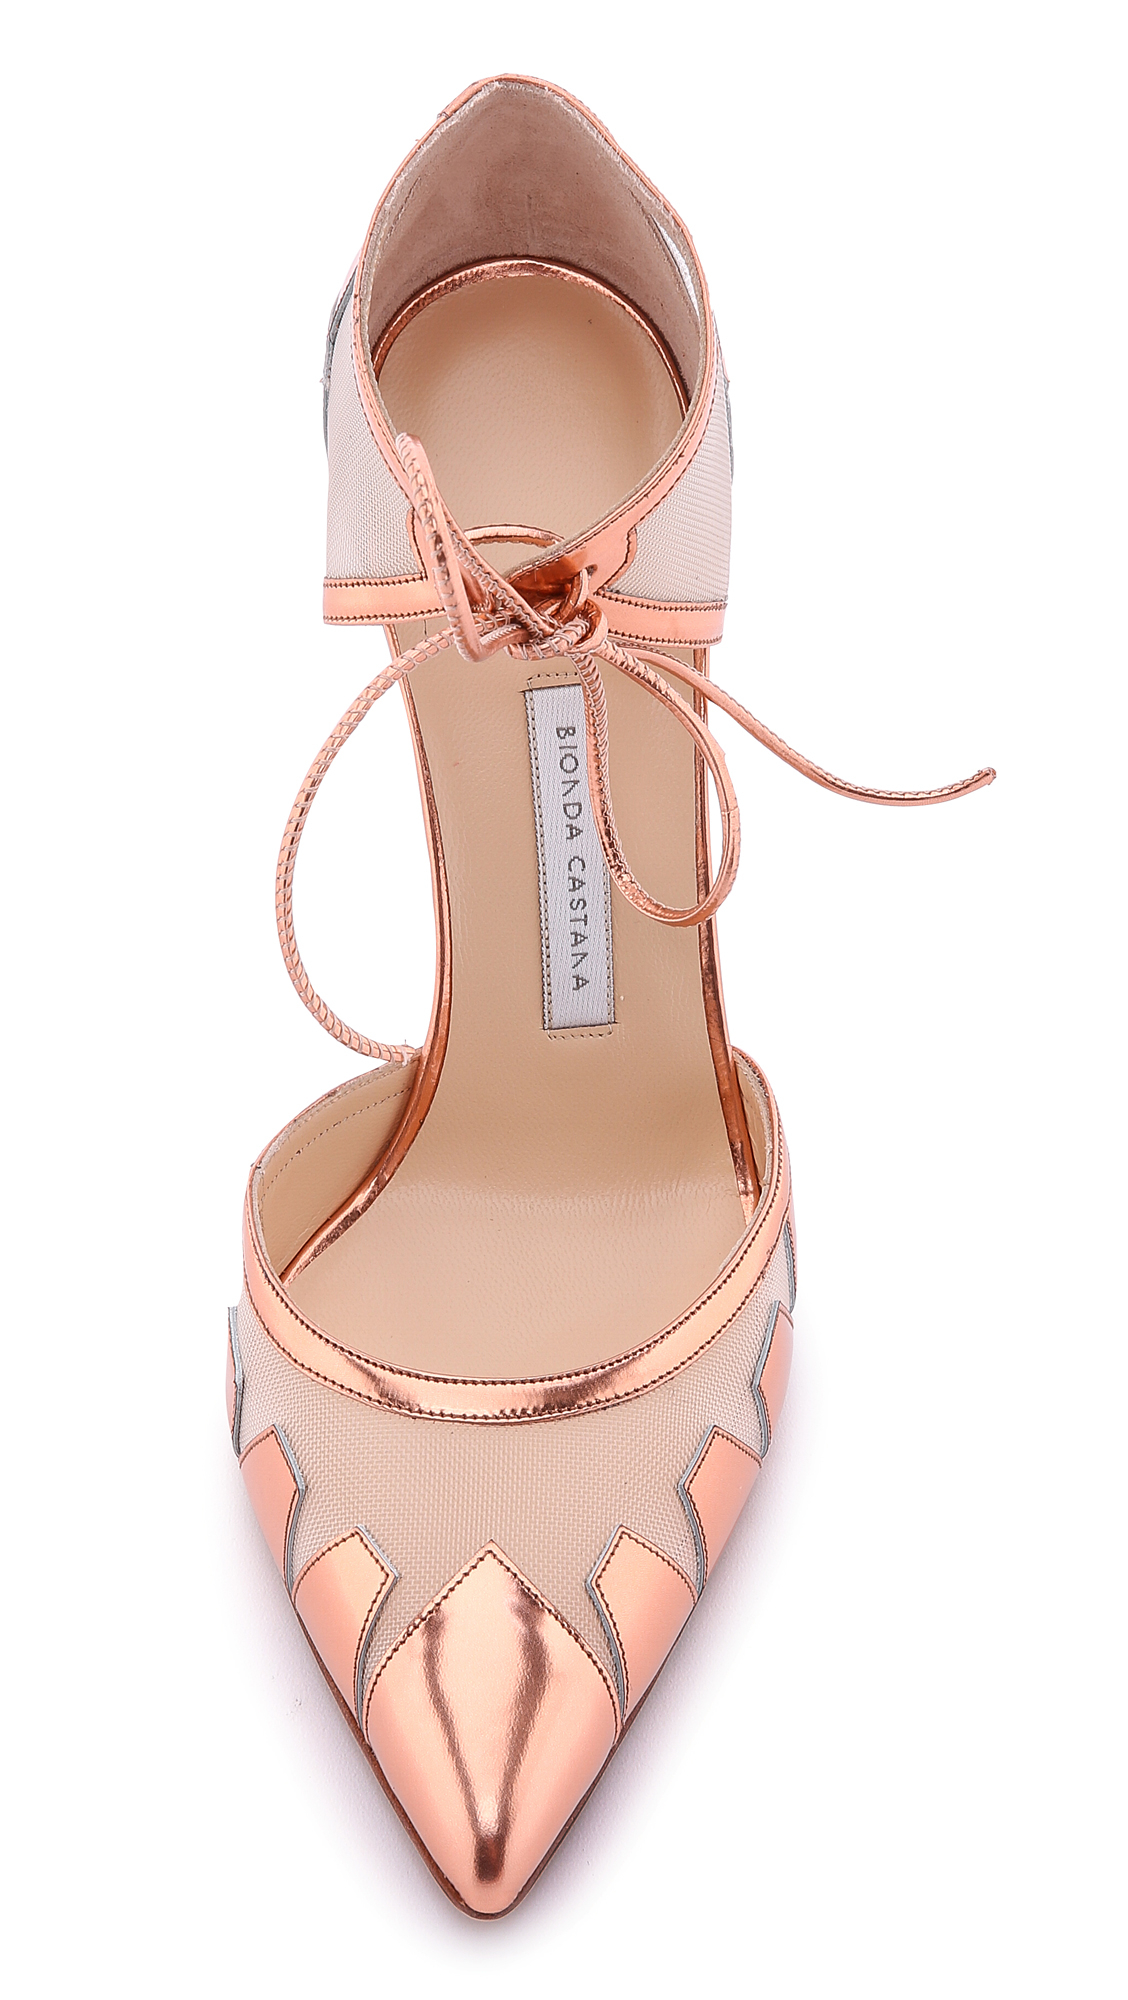 Rose Gold Colored Heels